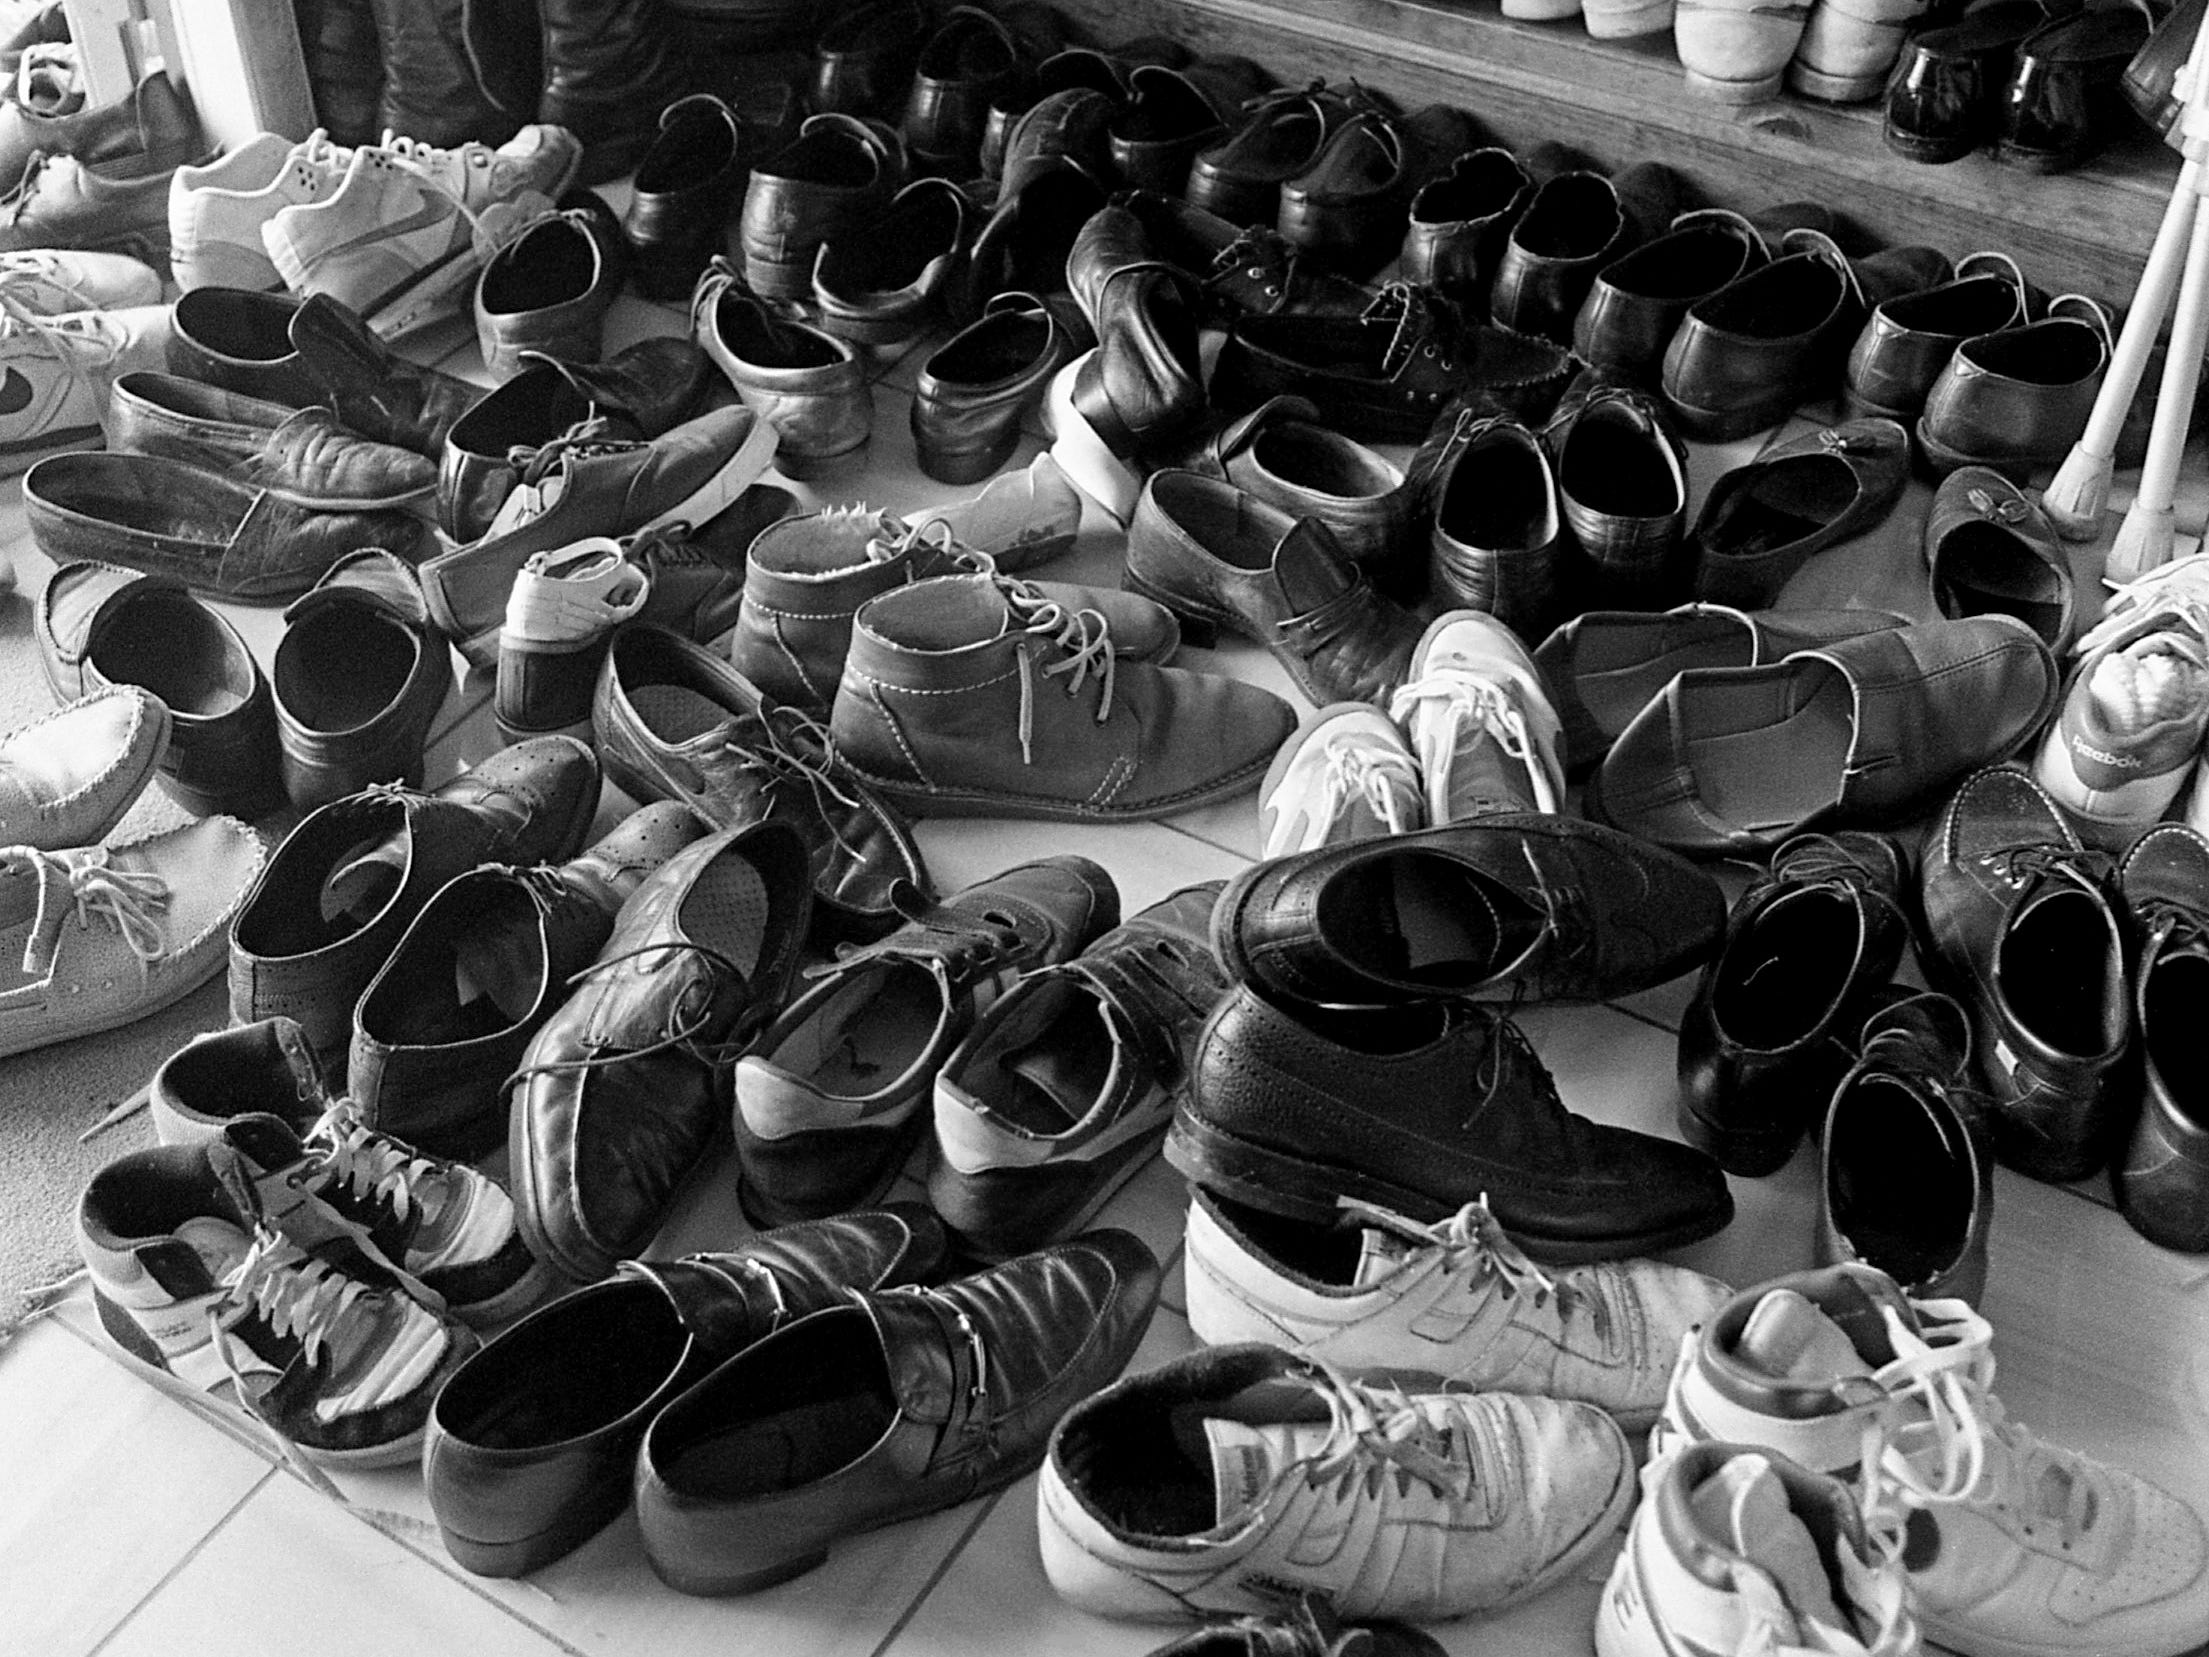 Nearly 300 pair of shoes wait at the door during the opening ceremony for the new Islamic Center on 12th Ave. S., March 31, 1989. The $180,000 building was designed by a local Muslim architect and is the first mosque built expressly to serve Nashville's growing population.